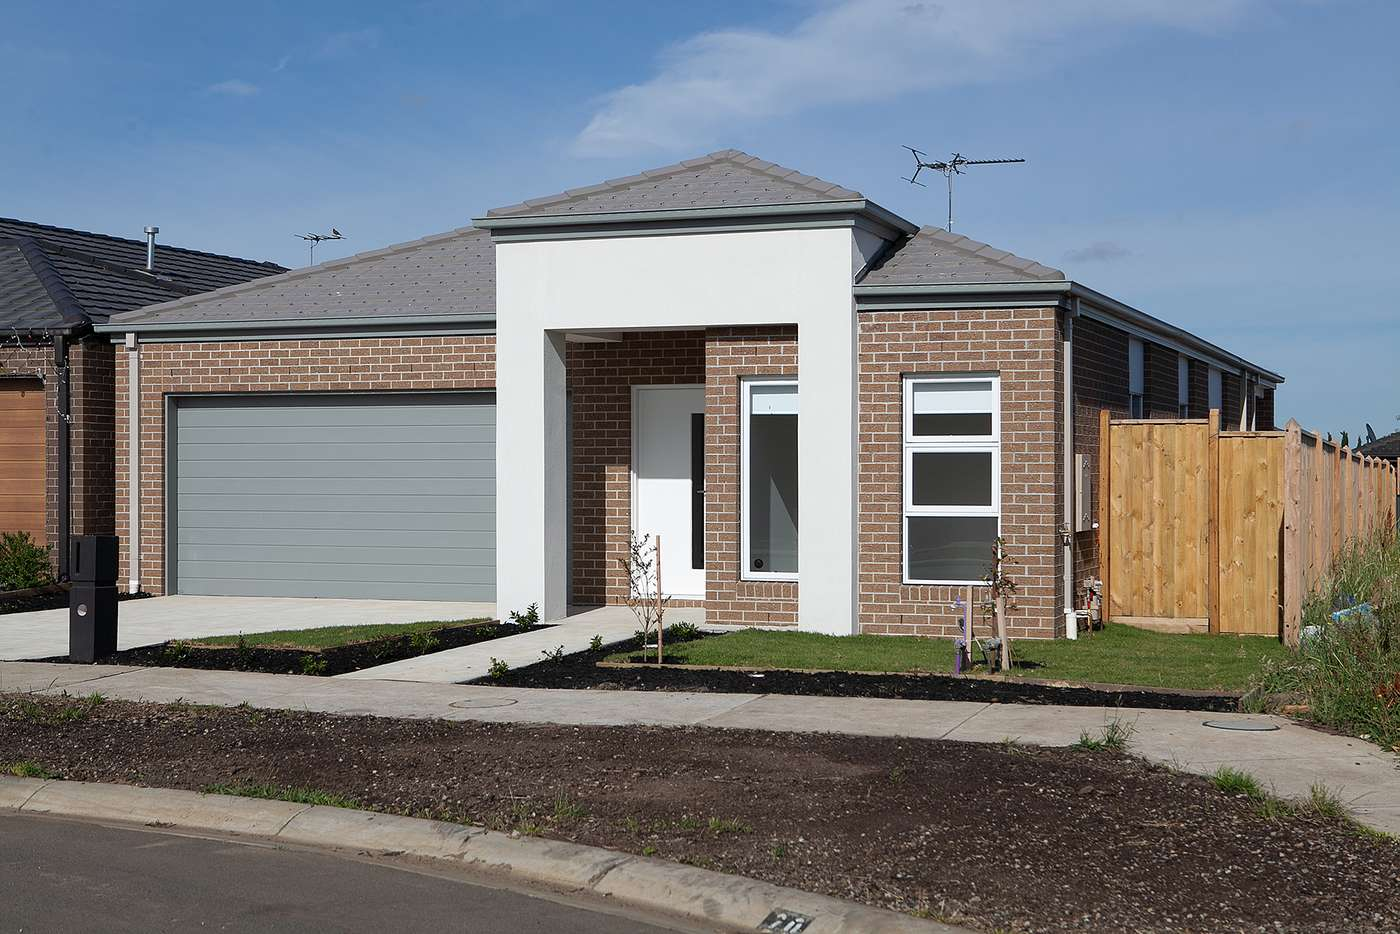 Main view of Homely house listing, 22 Salim Way, Clyde North VIC 3978